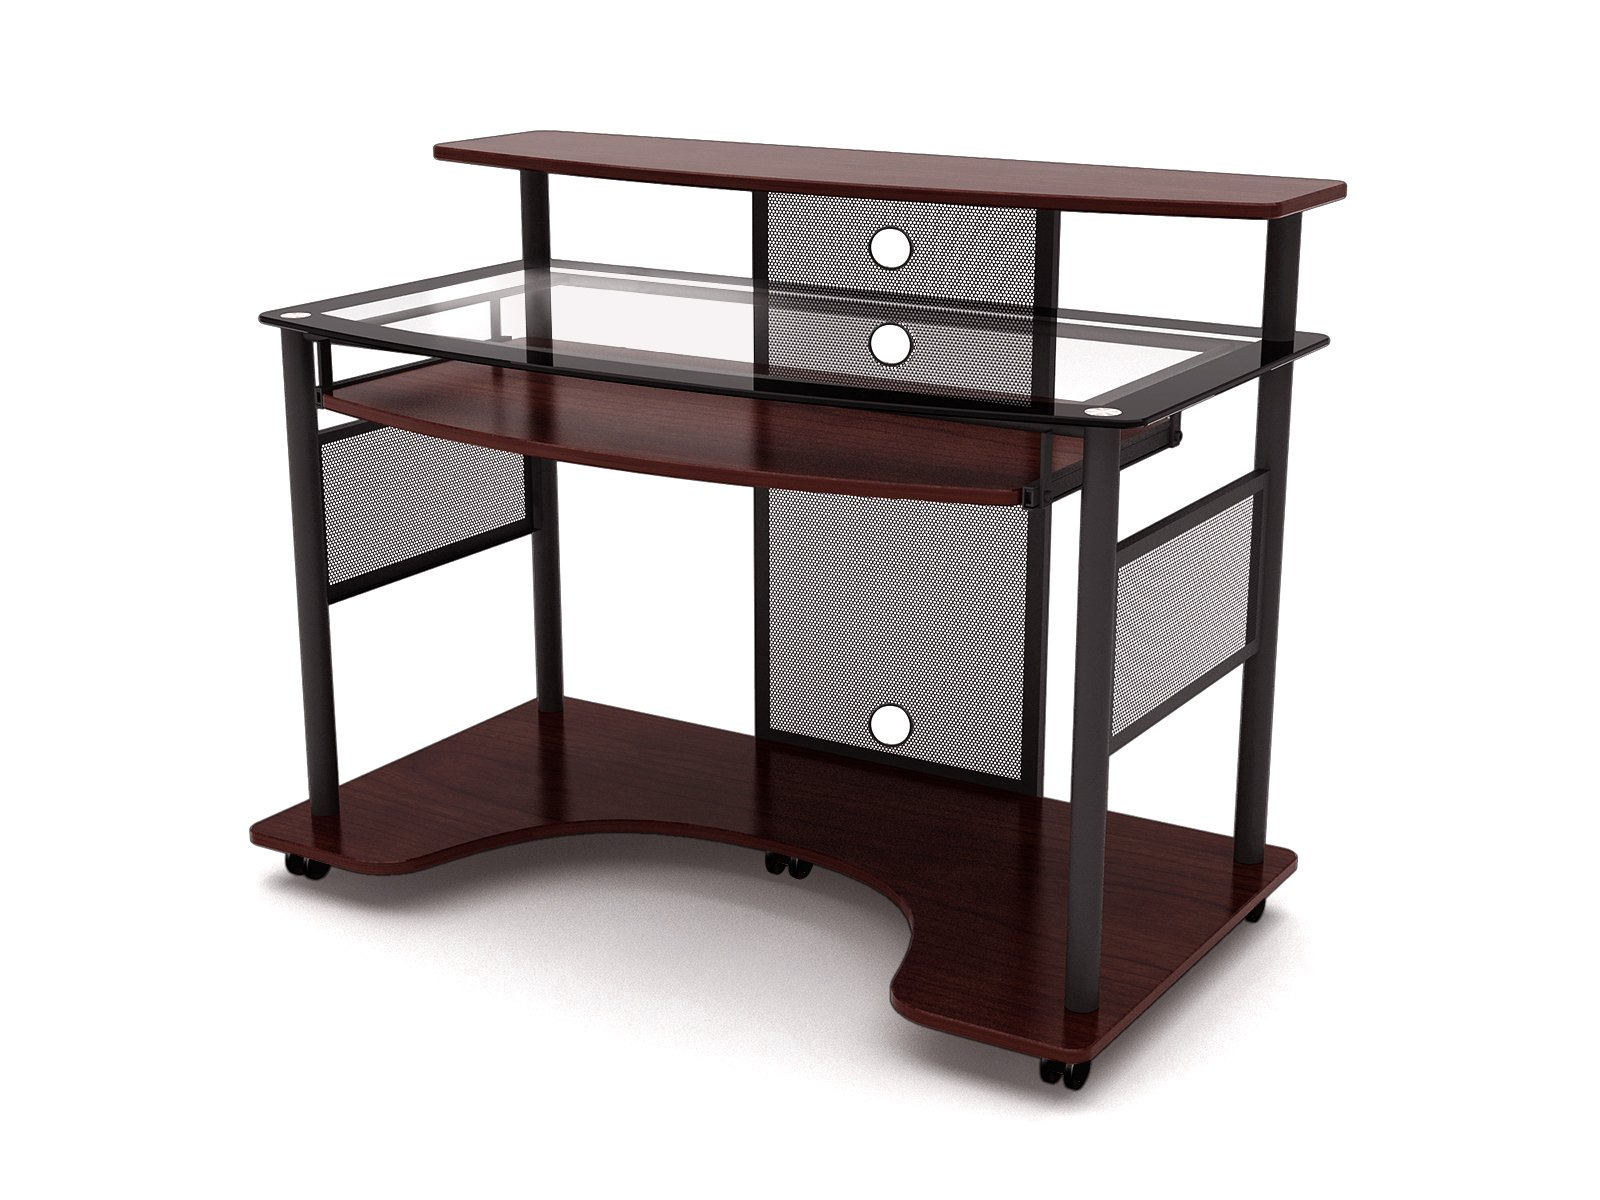 Z-Line Designs Cyrus Workstation by Z-Line Designs